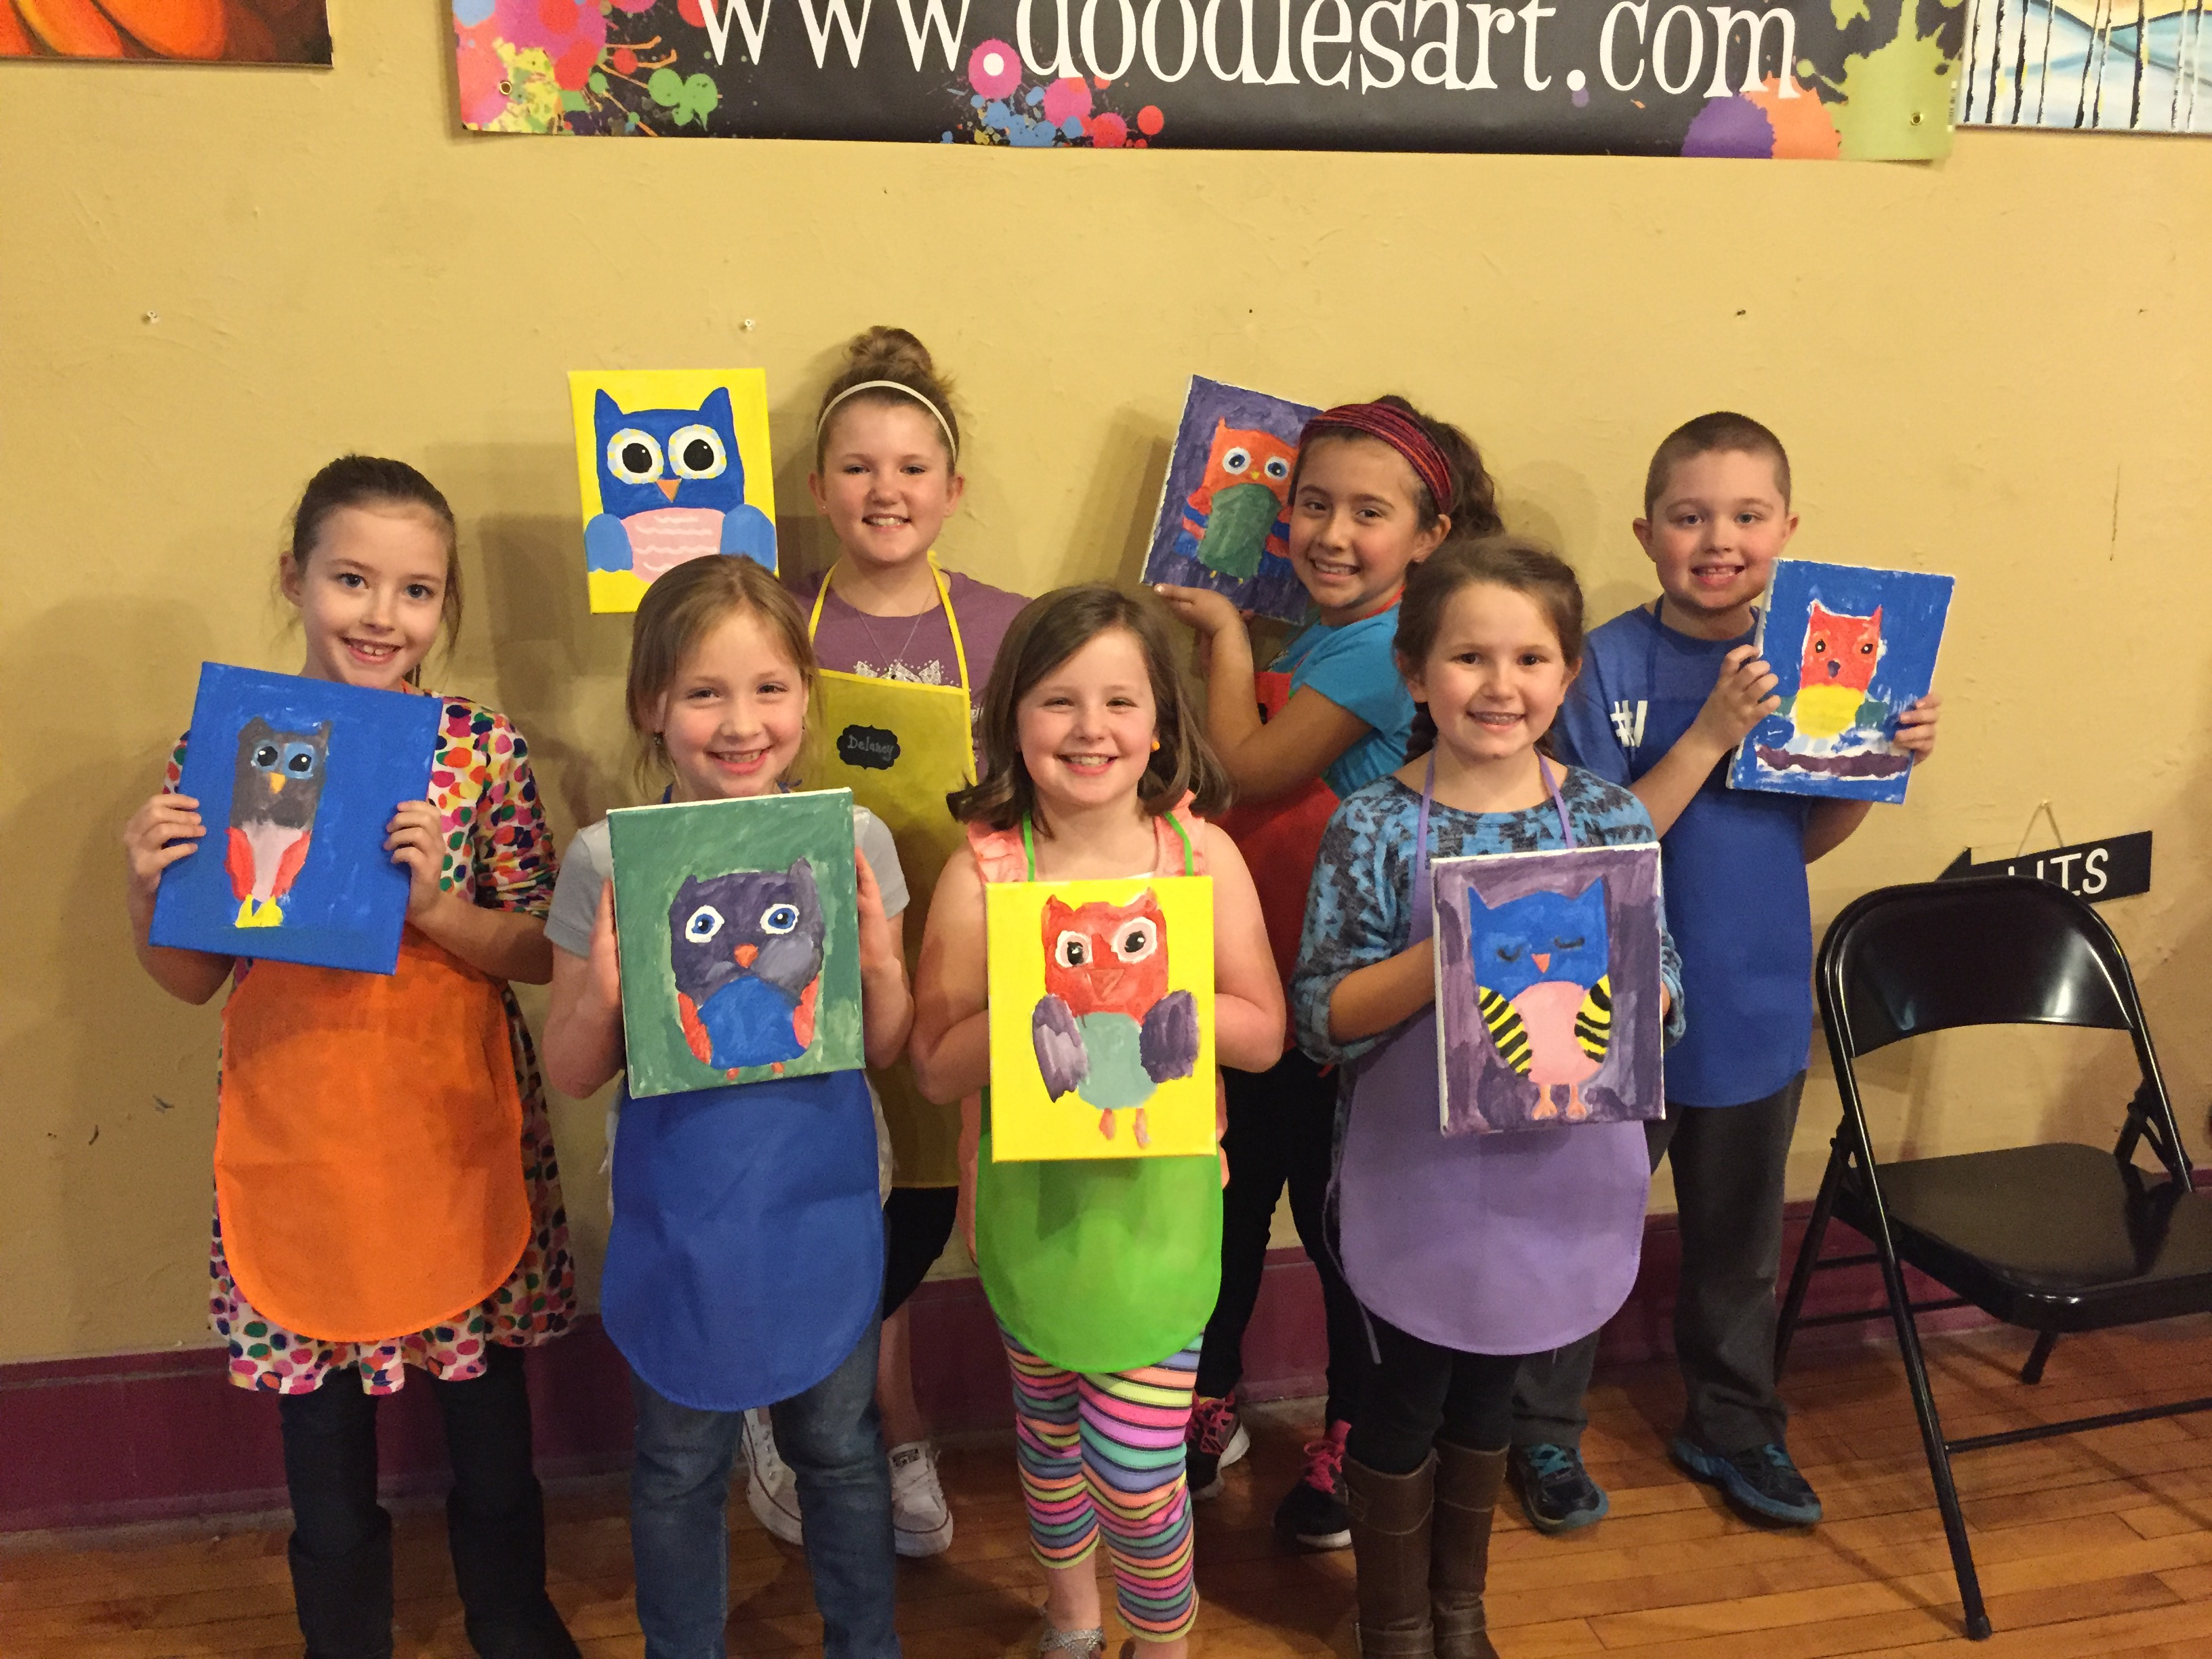 Emma's party guests had a HOOT painting Owls on 3/12/16!